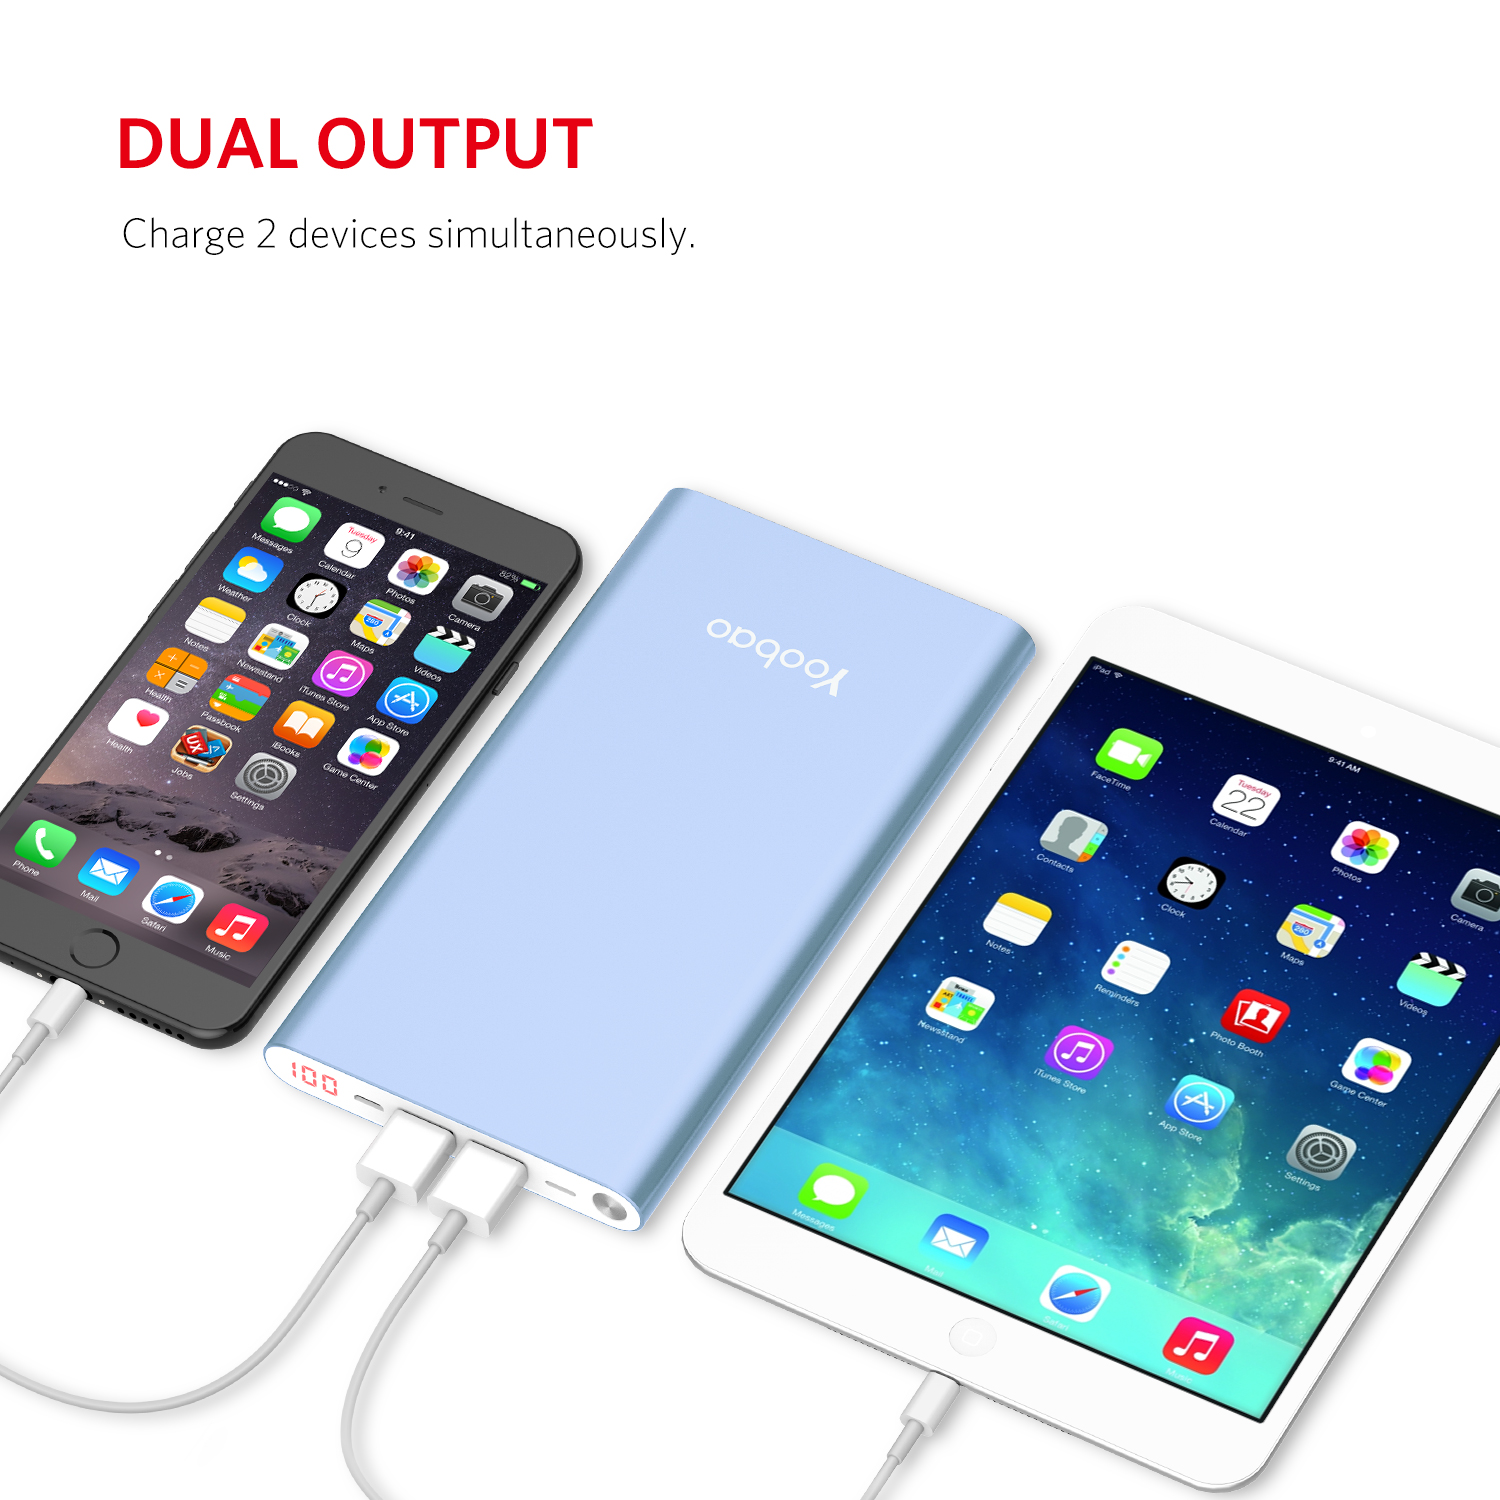 Yoobao A2 Power Bank 14.5mm Ultra Slim 20000mAh powerbank Dual Output/Input External Battery with Digital Display